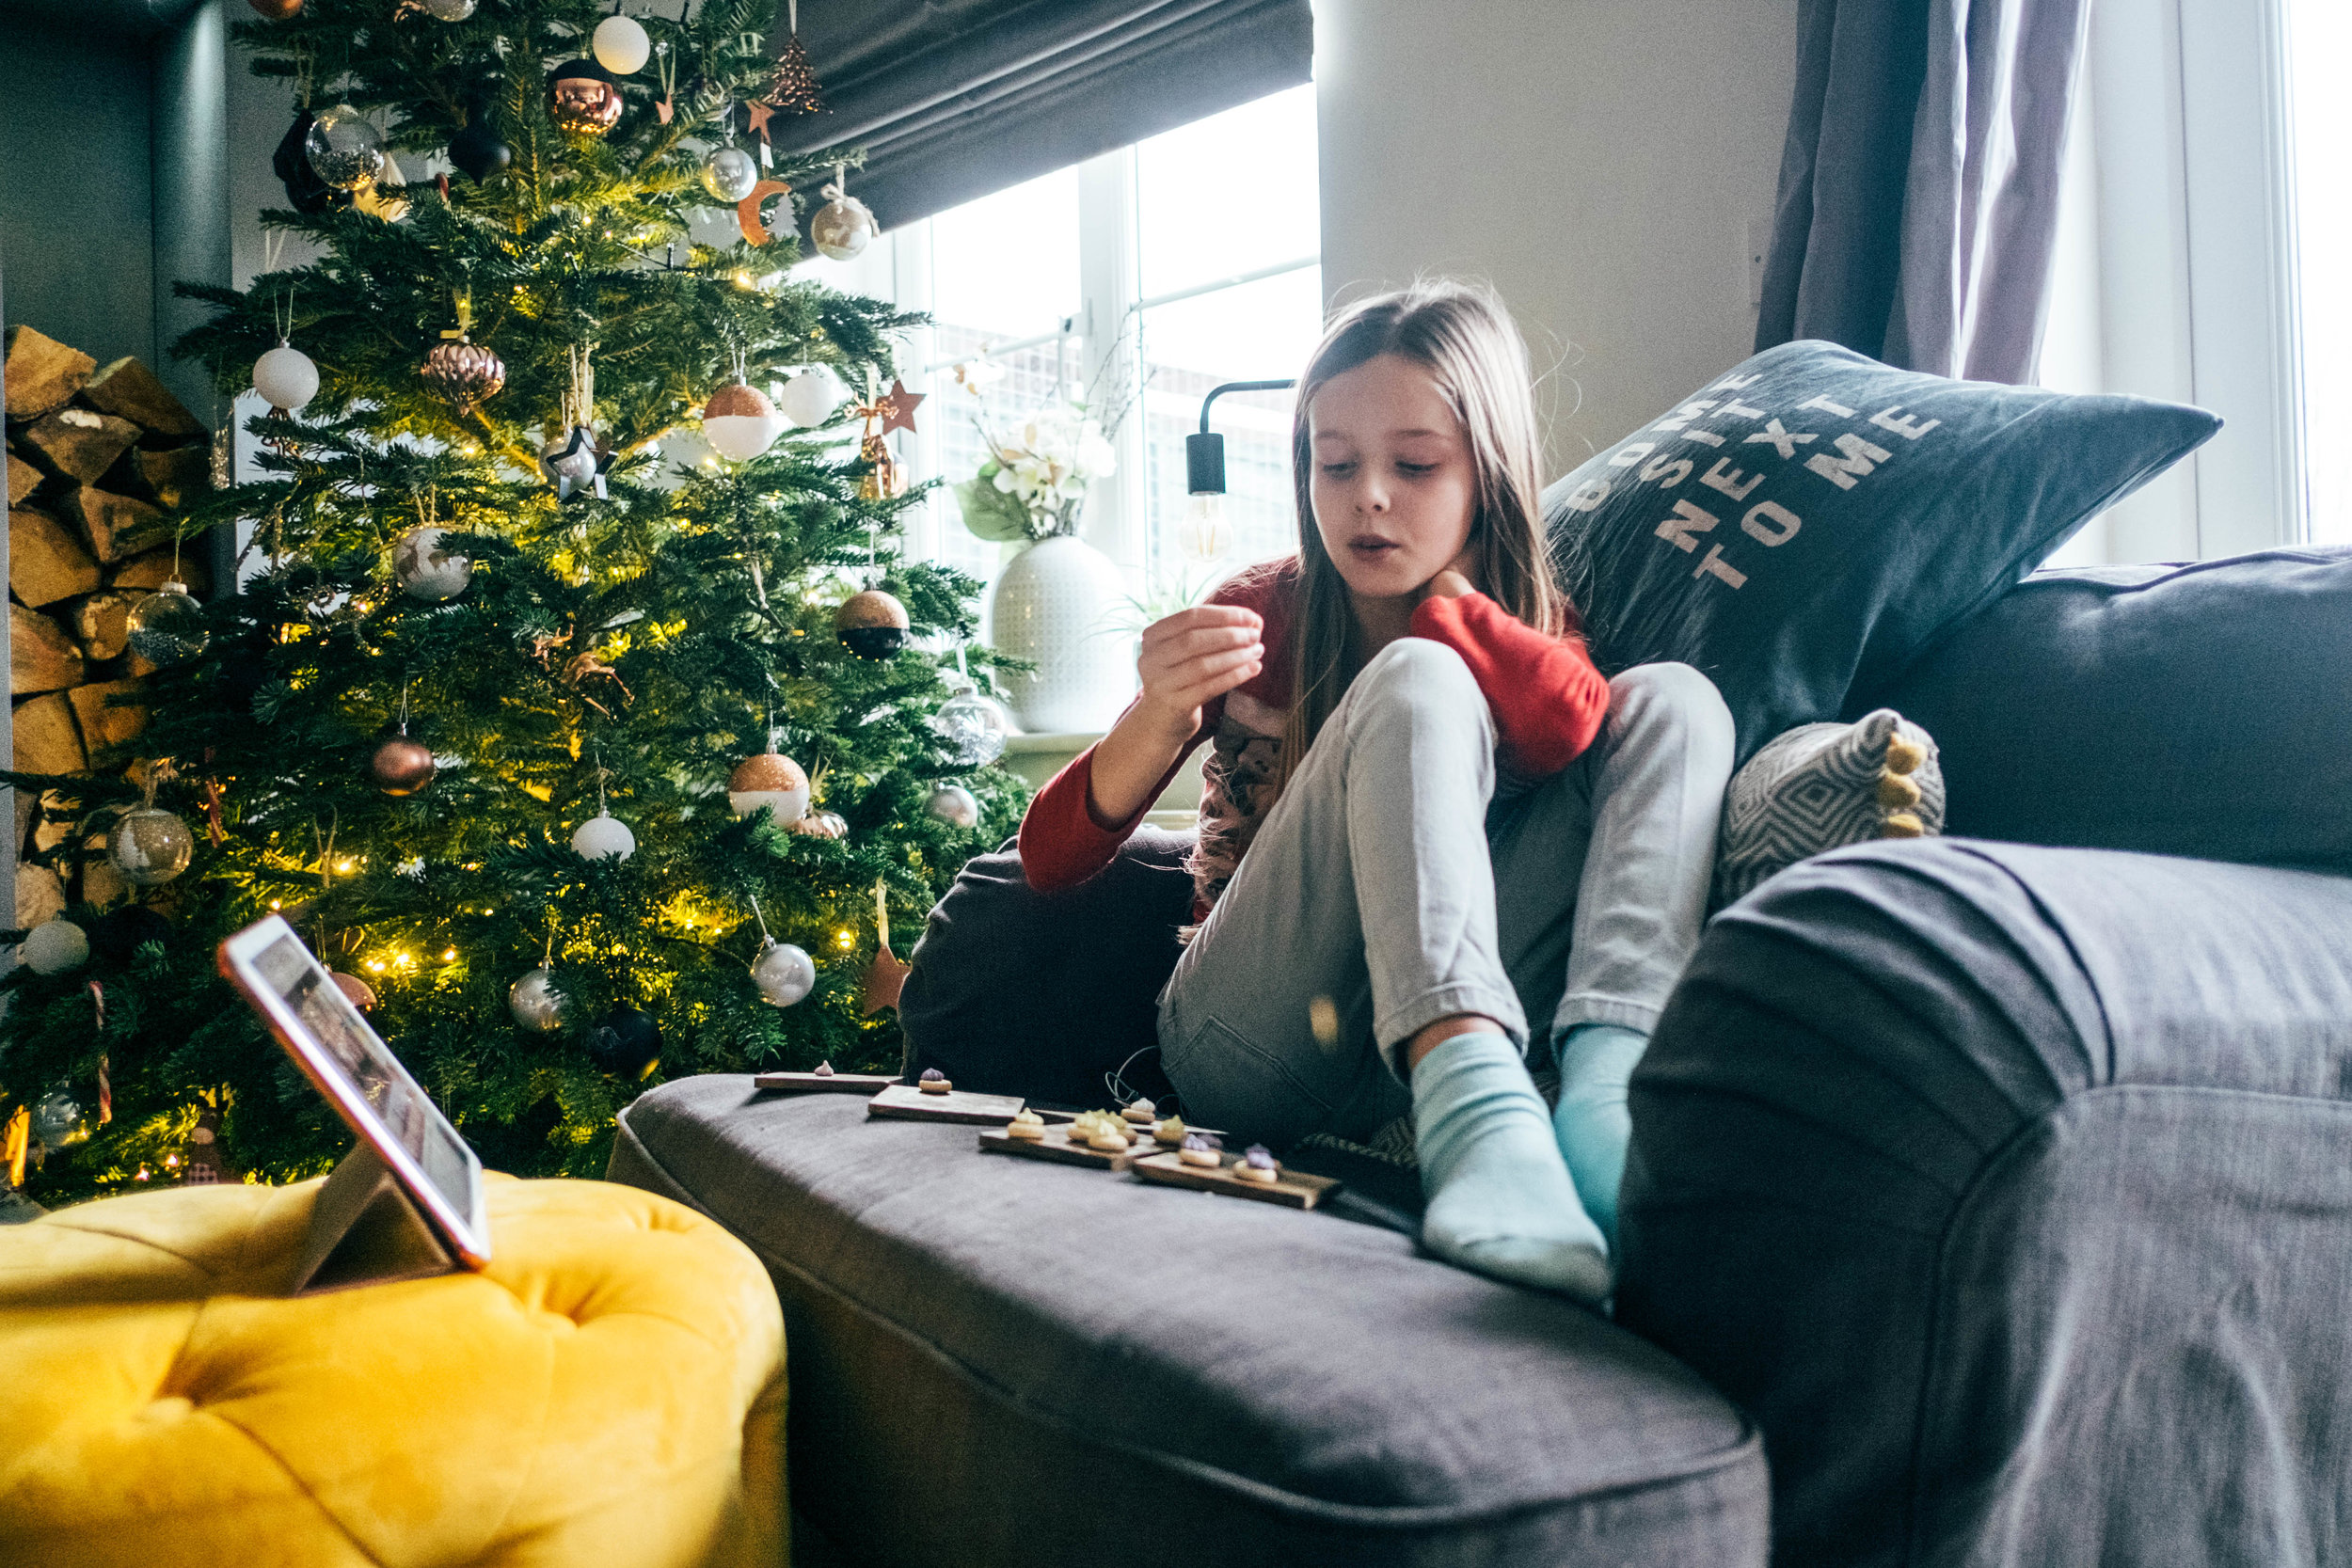 Little girl sits on chair by Christmas tree, Essex Documentary Wedding Family Photographer